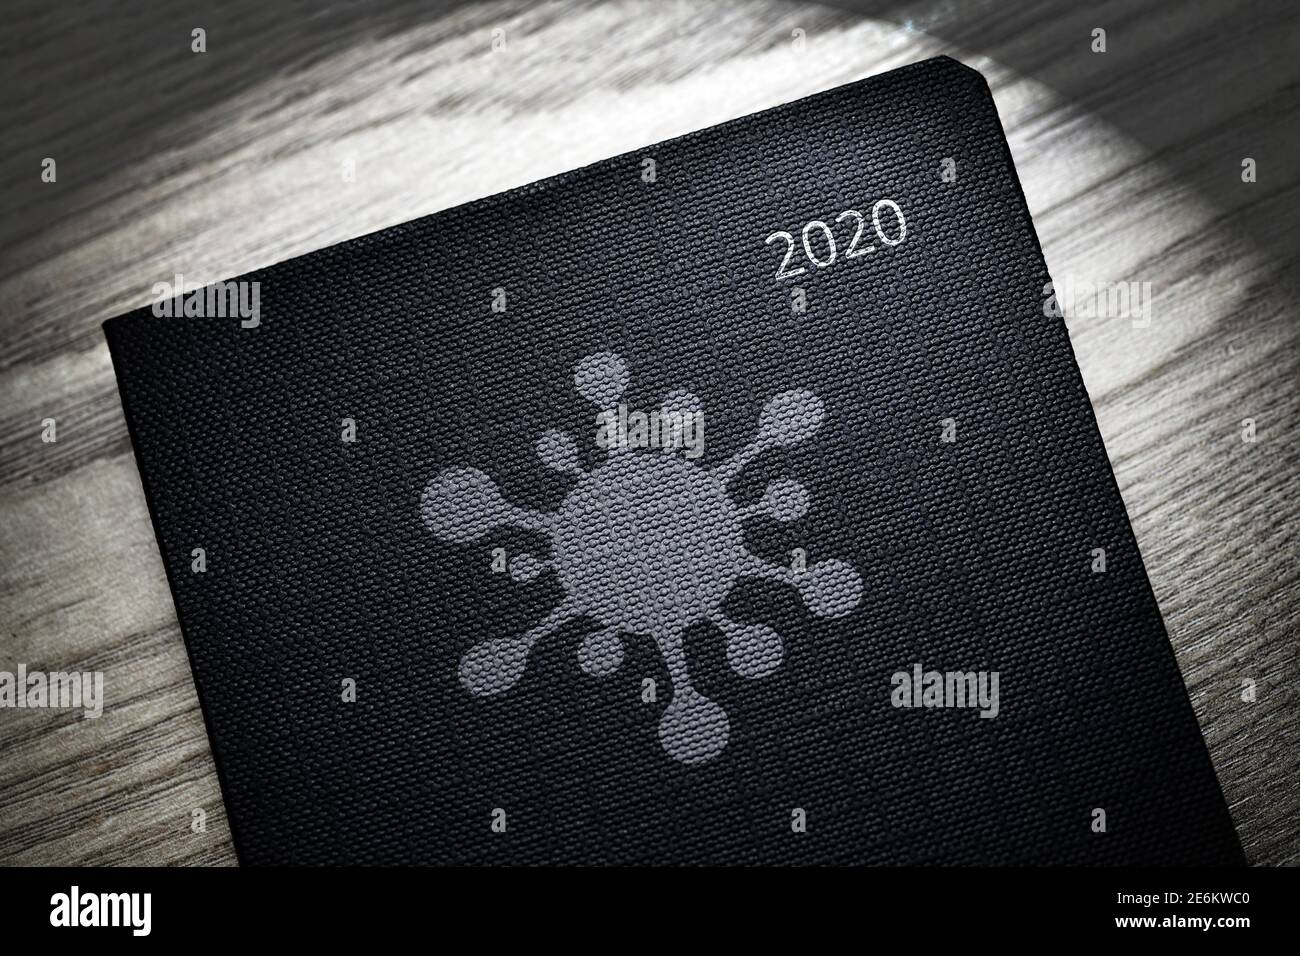 Coronavirus Symbol On Calendar Of The Year 2020 Stock Photo